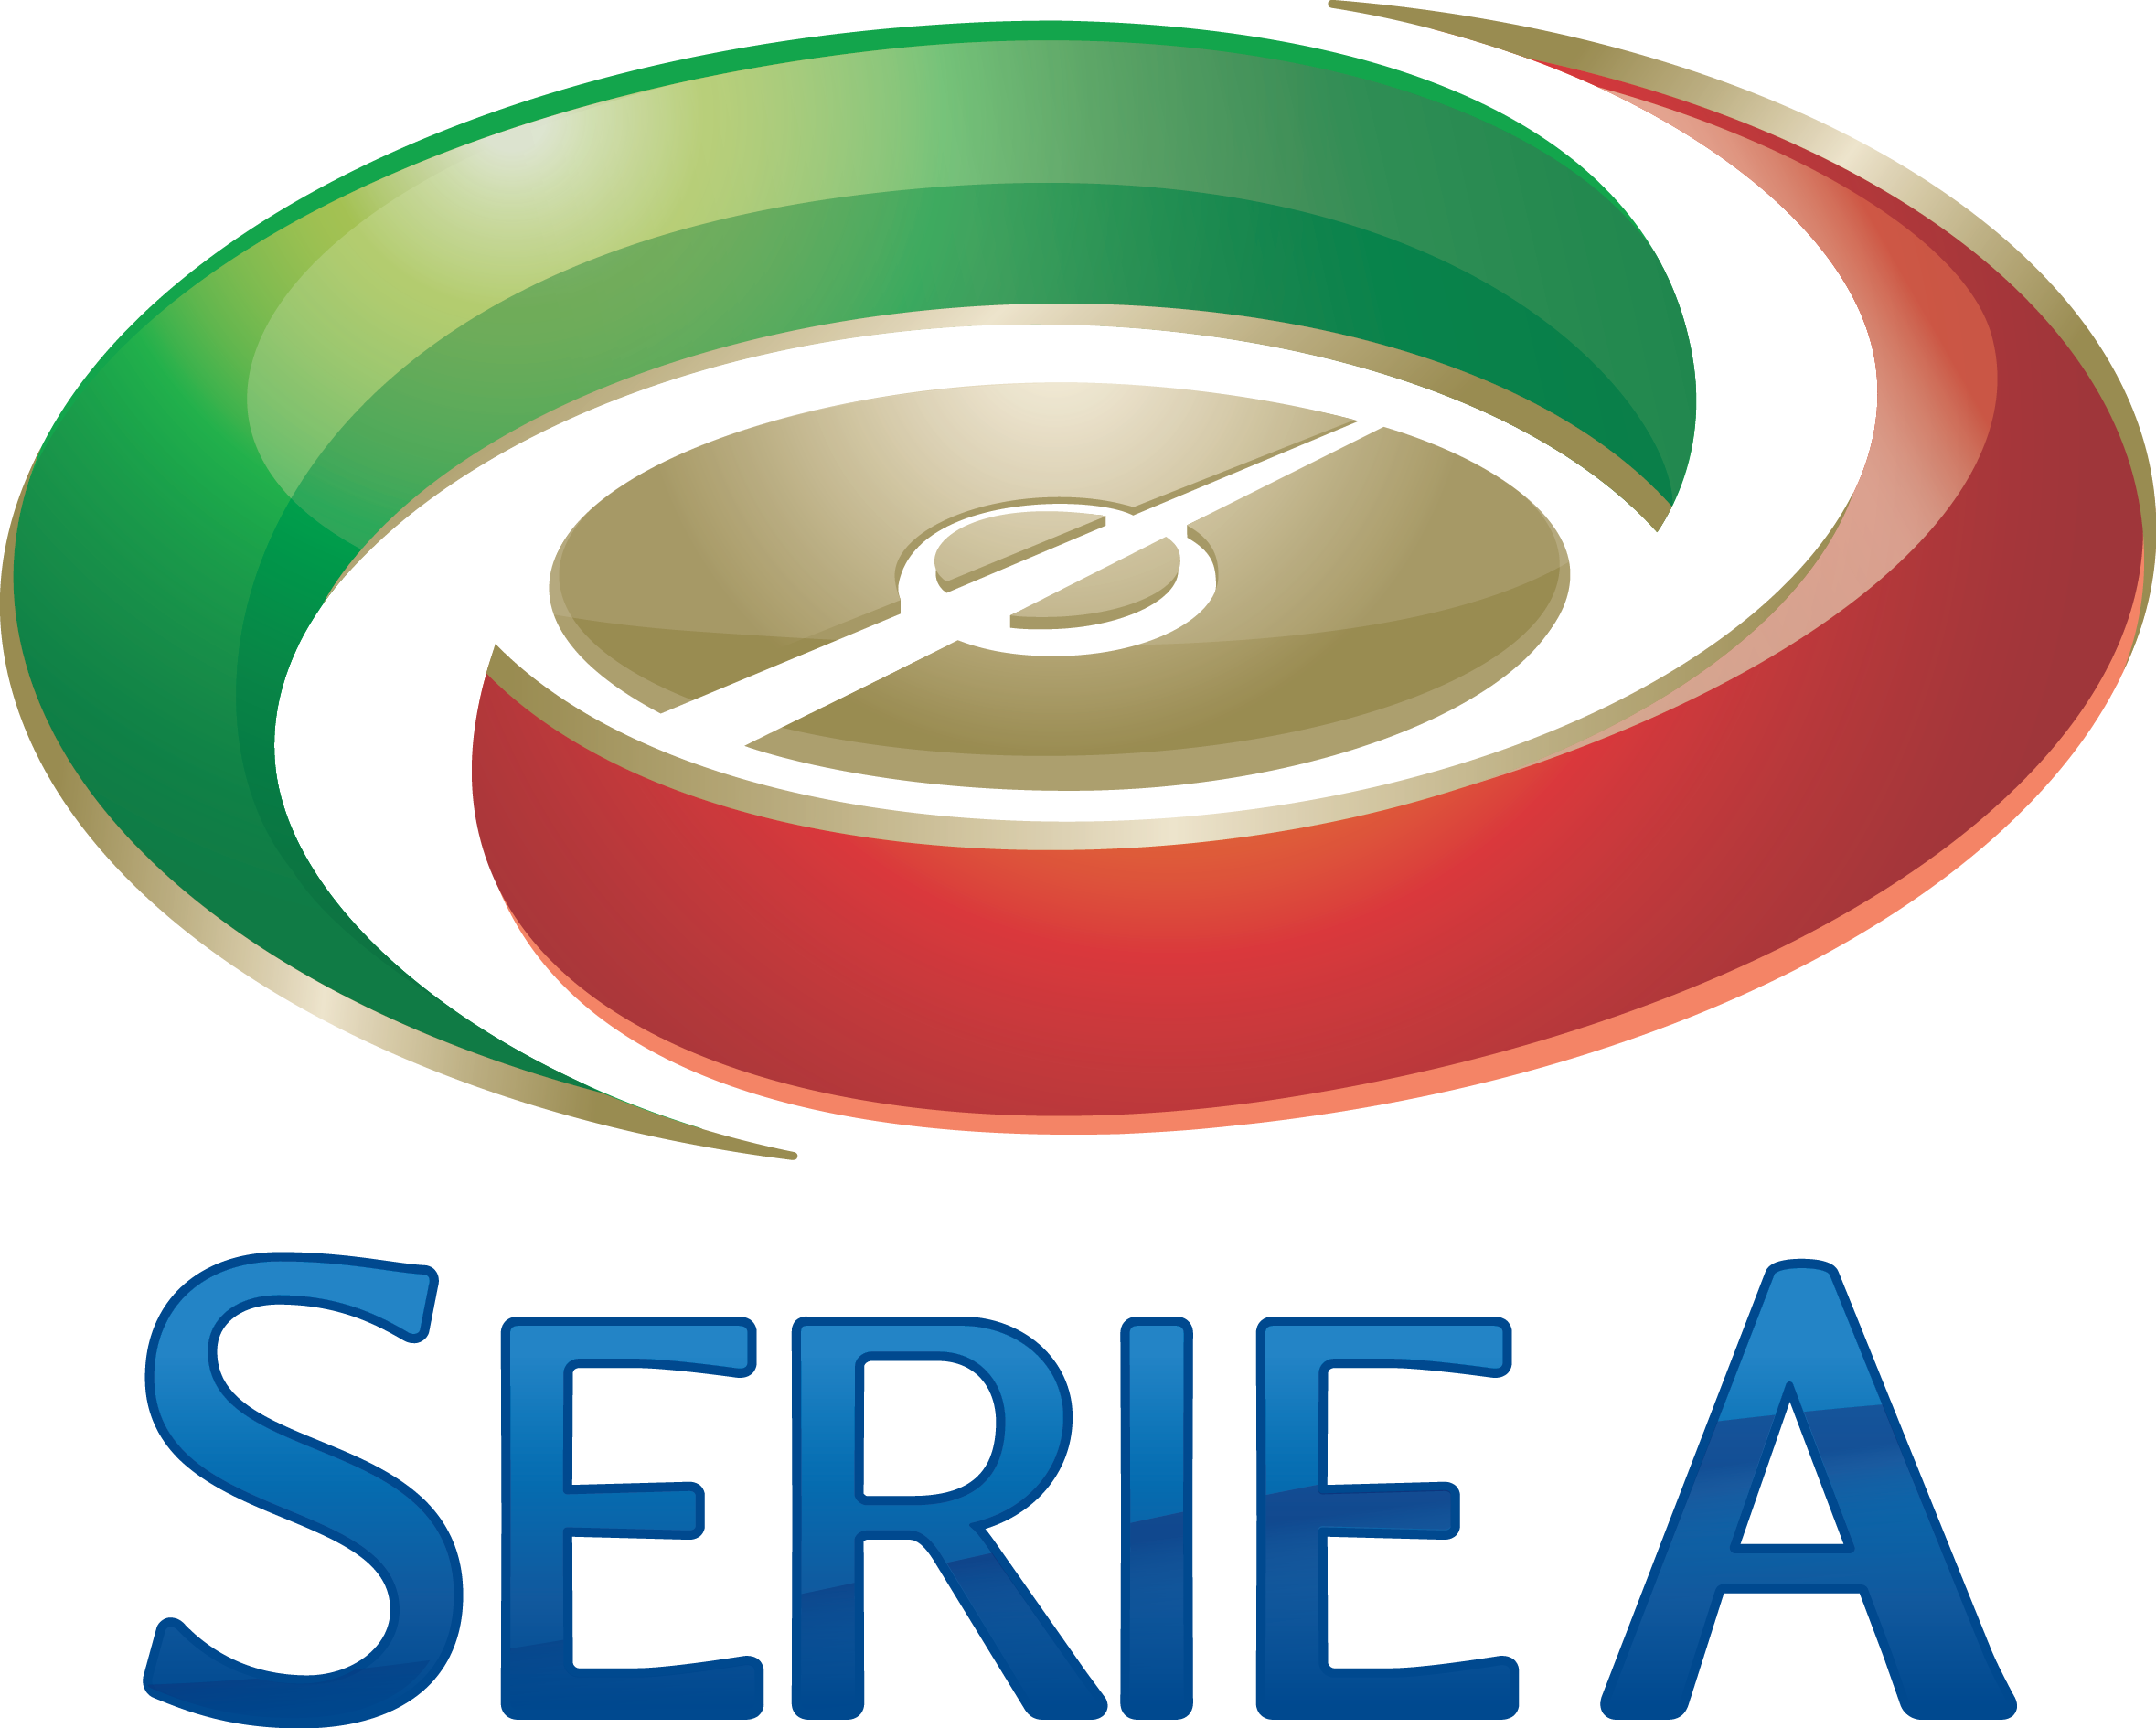 Cagliari vs Napoli 0 - 3 All goals and highlights 19/04/2015